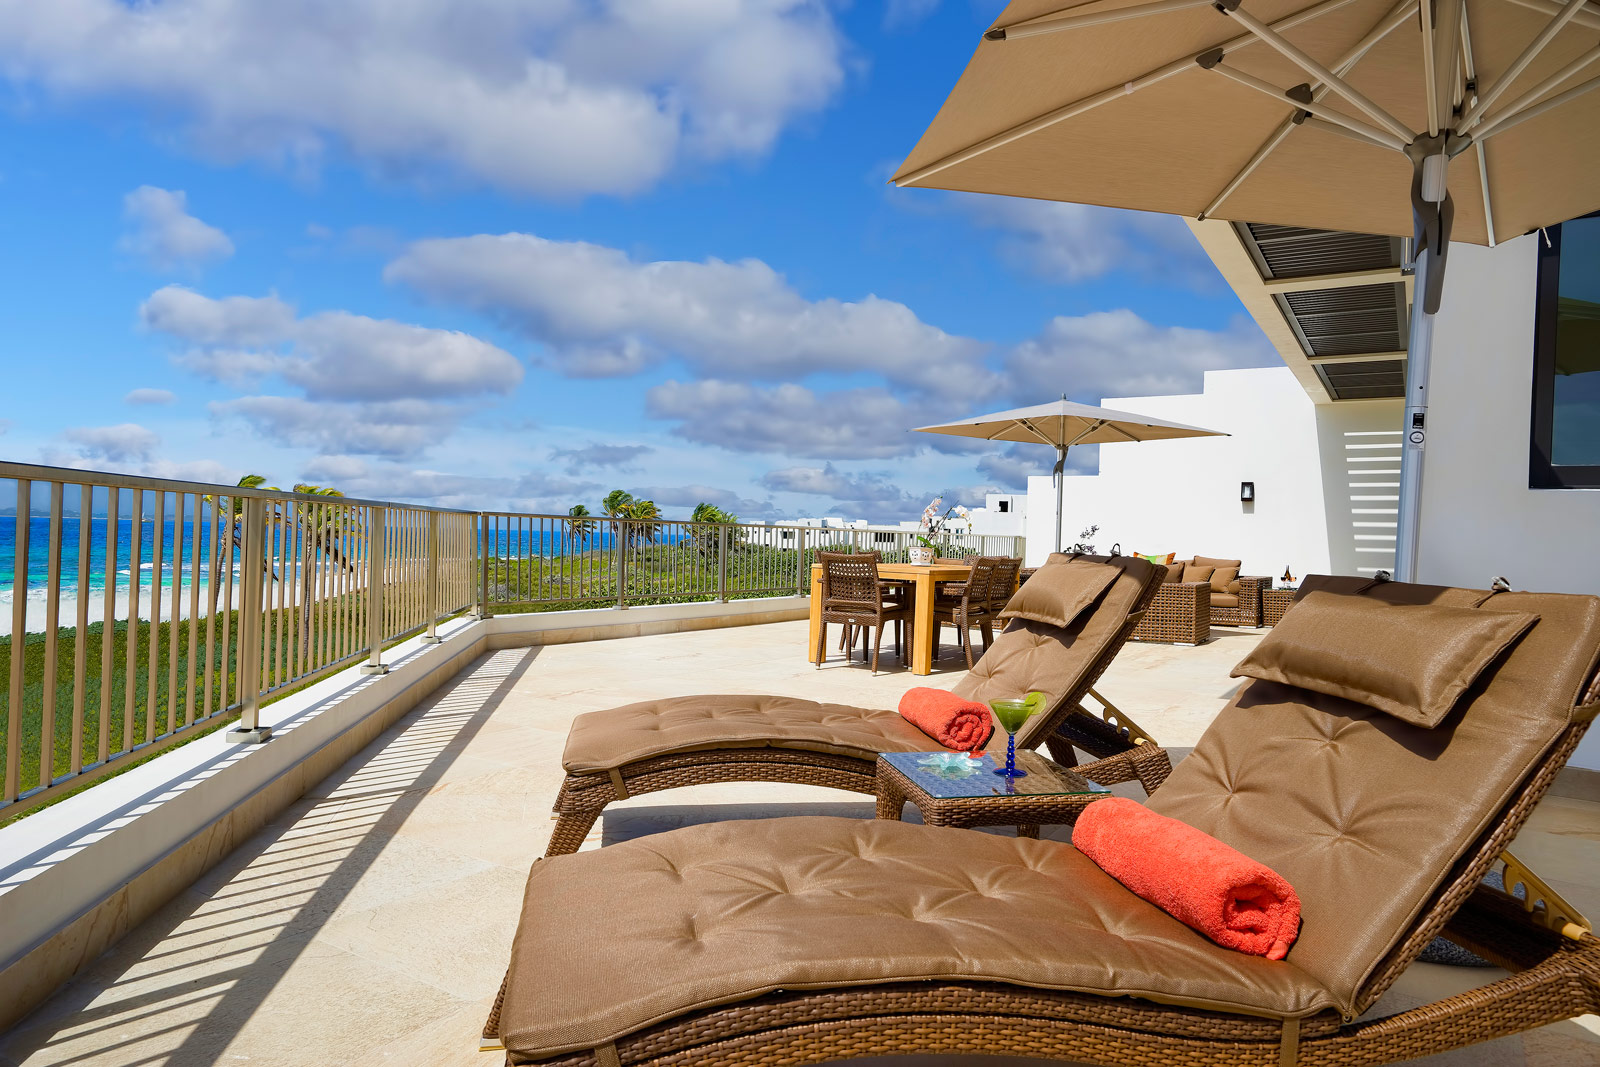 Anguilla's The Reef by CuisinArt All Set For November Opening